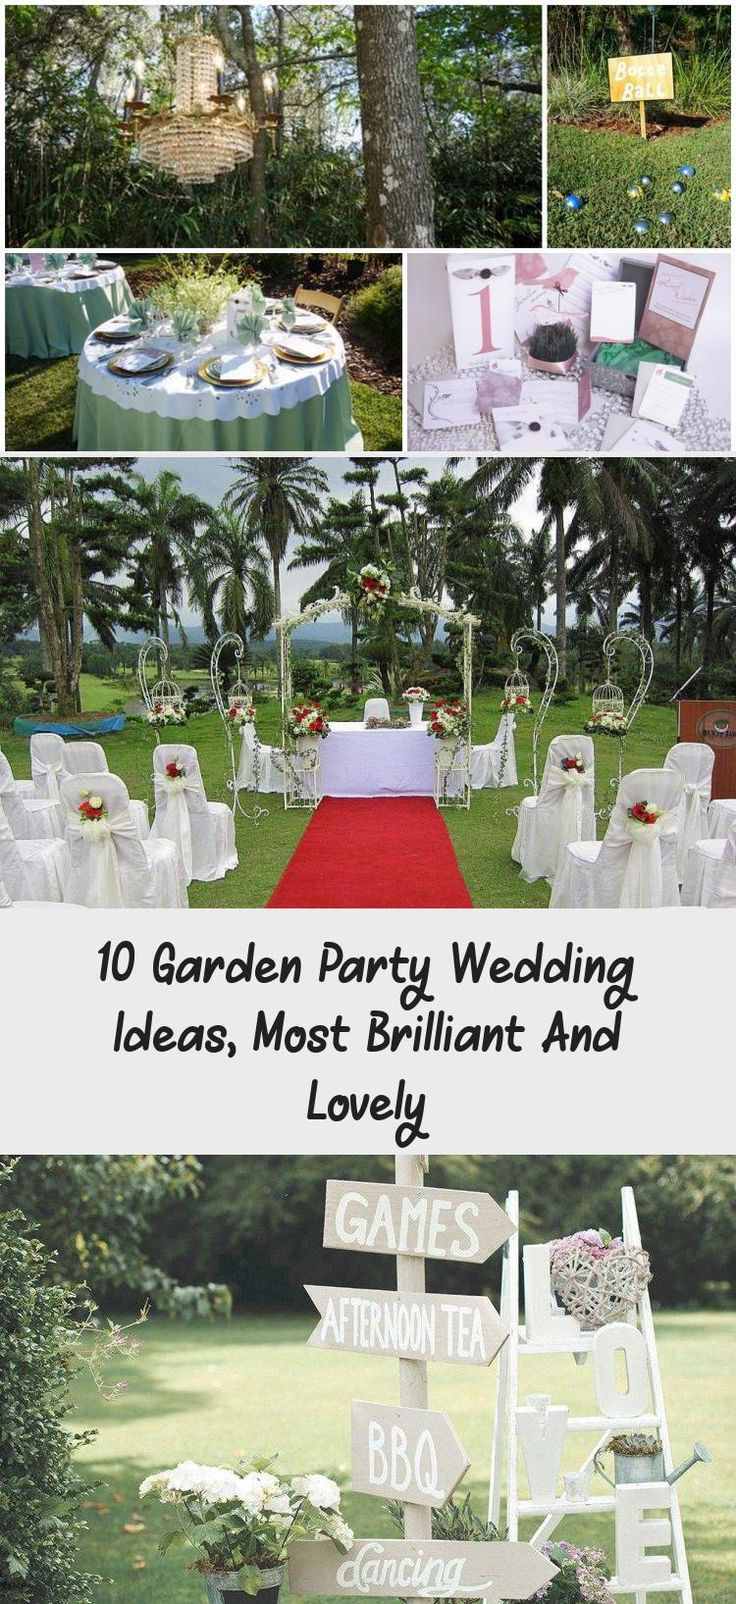 They Danced All Night Long At This Romantic Garden Chic Wedding with regard to Garden Party Wedding Ideas #weddinggardening #backyardgarden #gardening #backyard #weddingoutdoor #outdoorbackyard #backyardwedding #backyardweddingparty